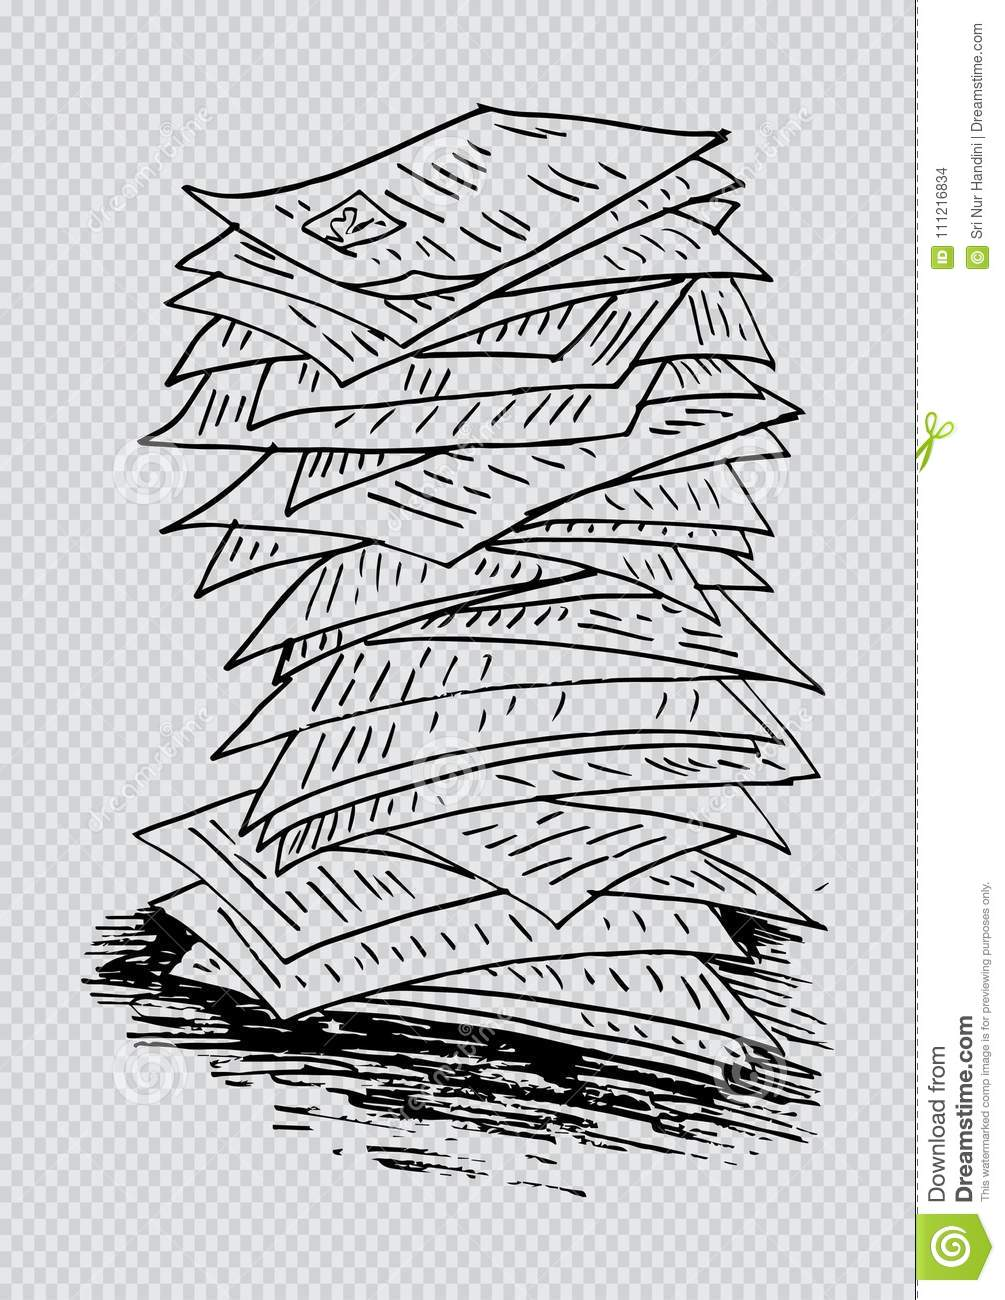 sketch of stack of work papers stock illustration - illustration of